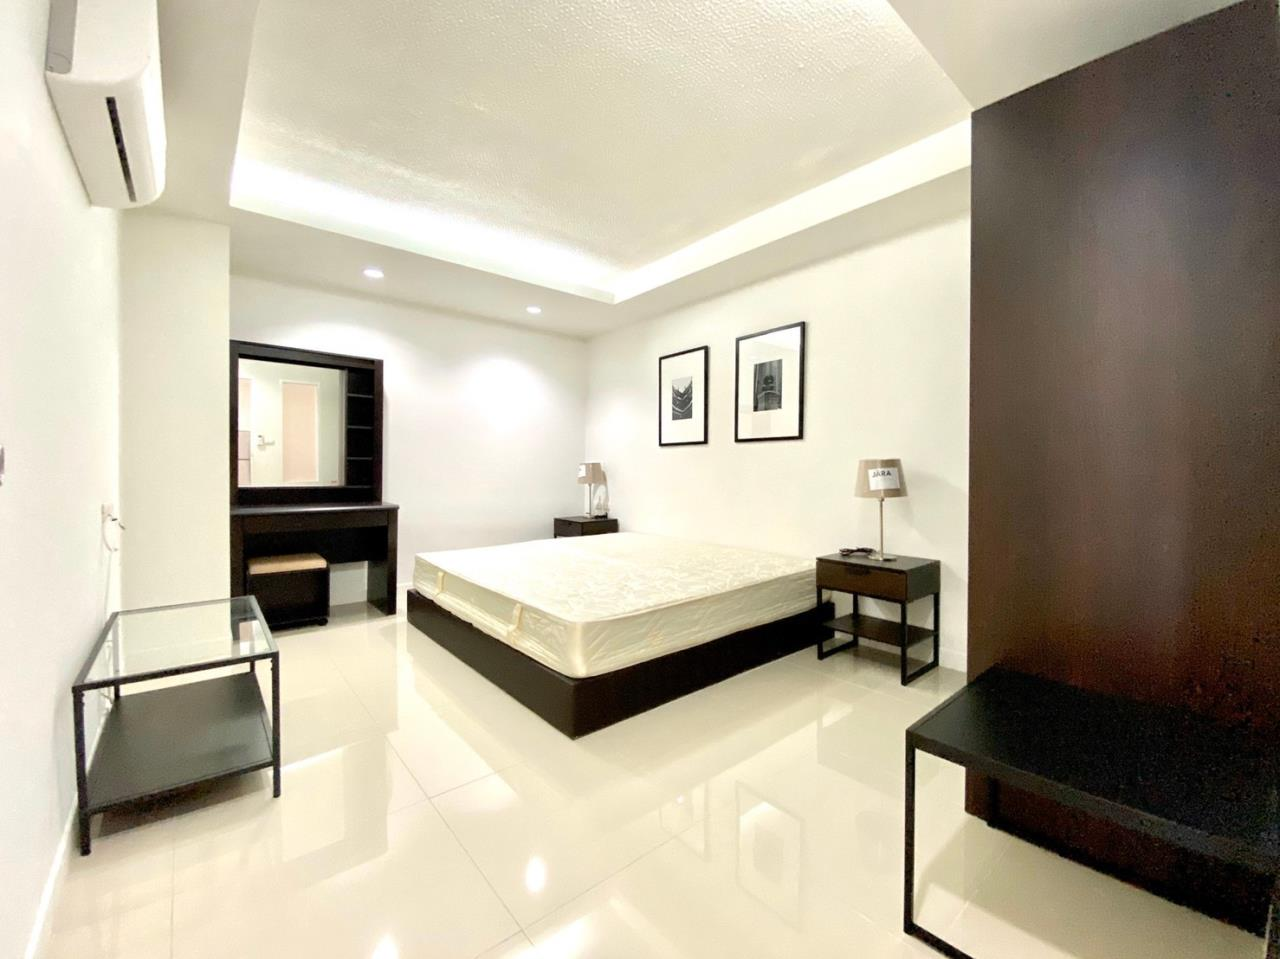 Bestbkkcondos Agency's Waterford 50 2 bedrooms 2 bathrooms 96.8 sqm. 8th Floor for sale 6.582mTHB Rental 28000THB 13